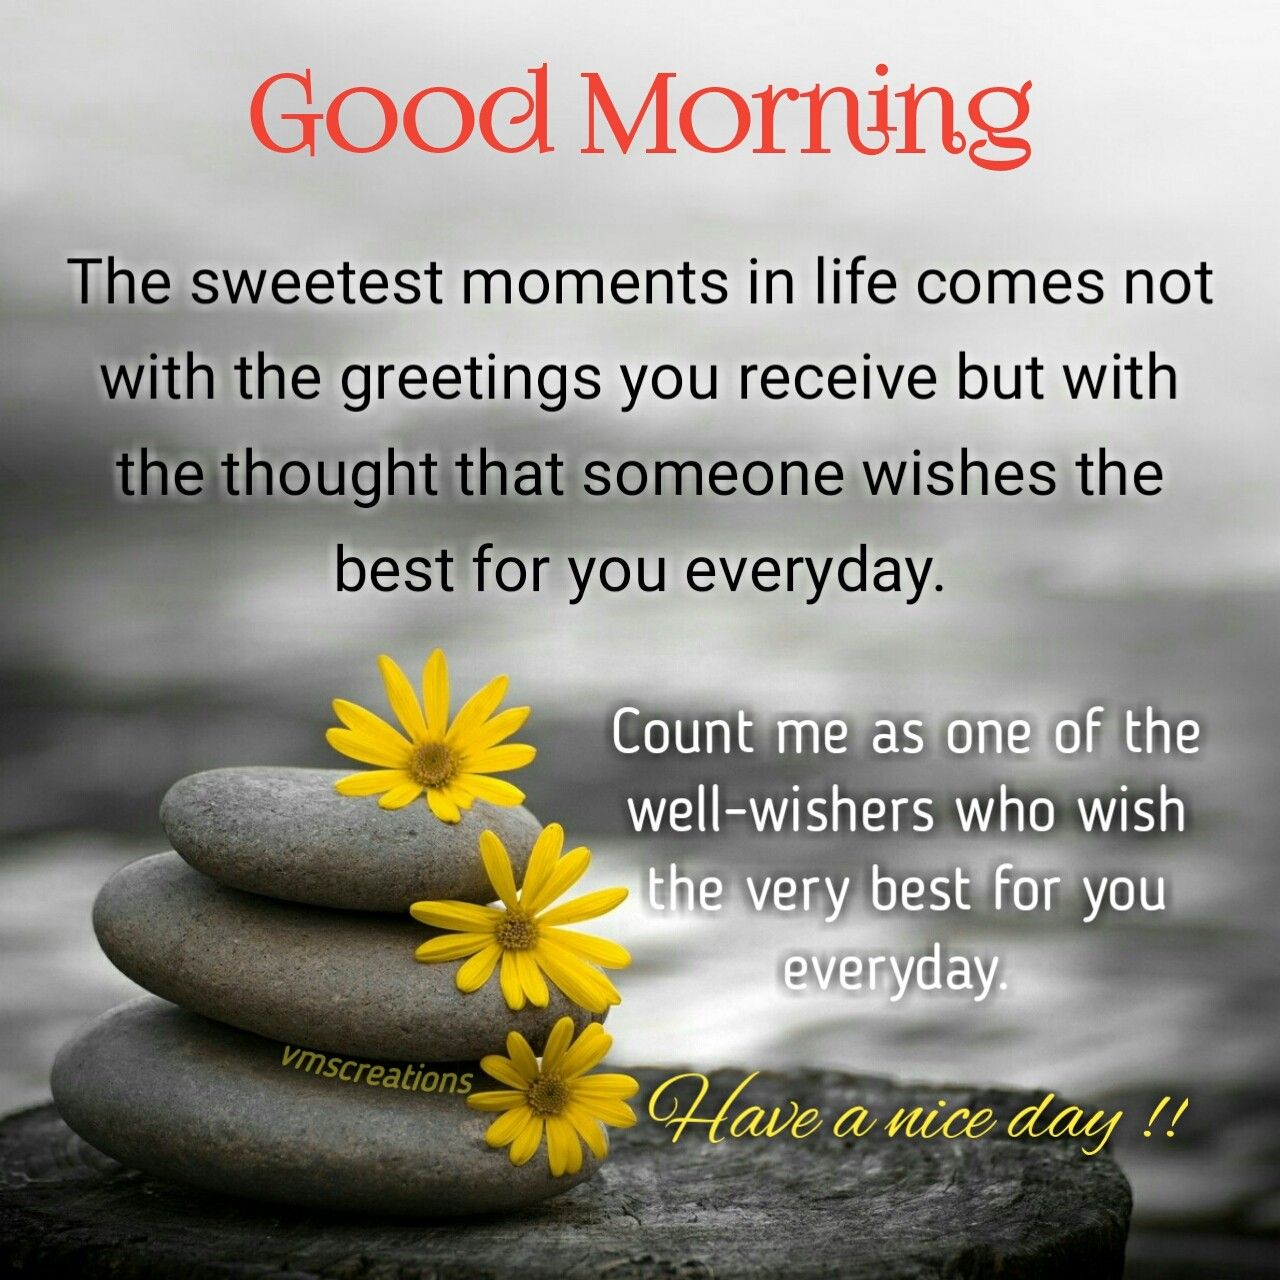 Pin by maajid on good morning wishes pinterest morning greetings good morning quotes quotation image quotes of the day description good morning inspirations sharing is caring dont forget to share this quote m4hsunfo